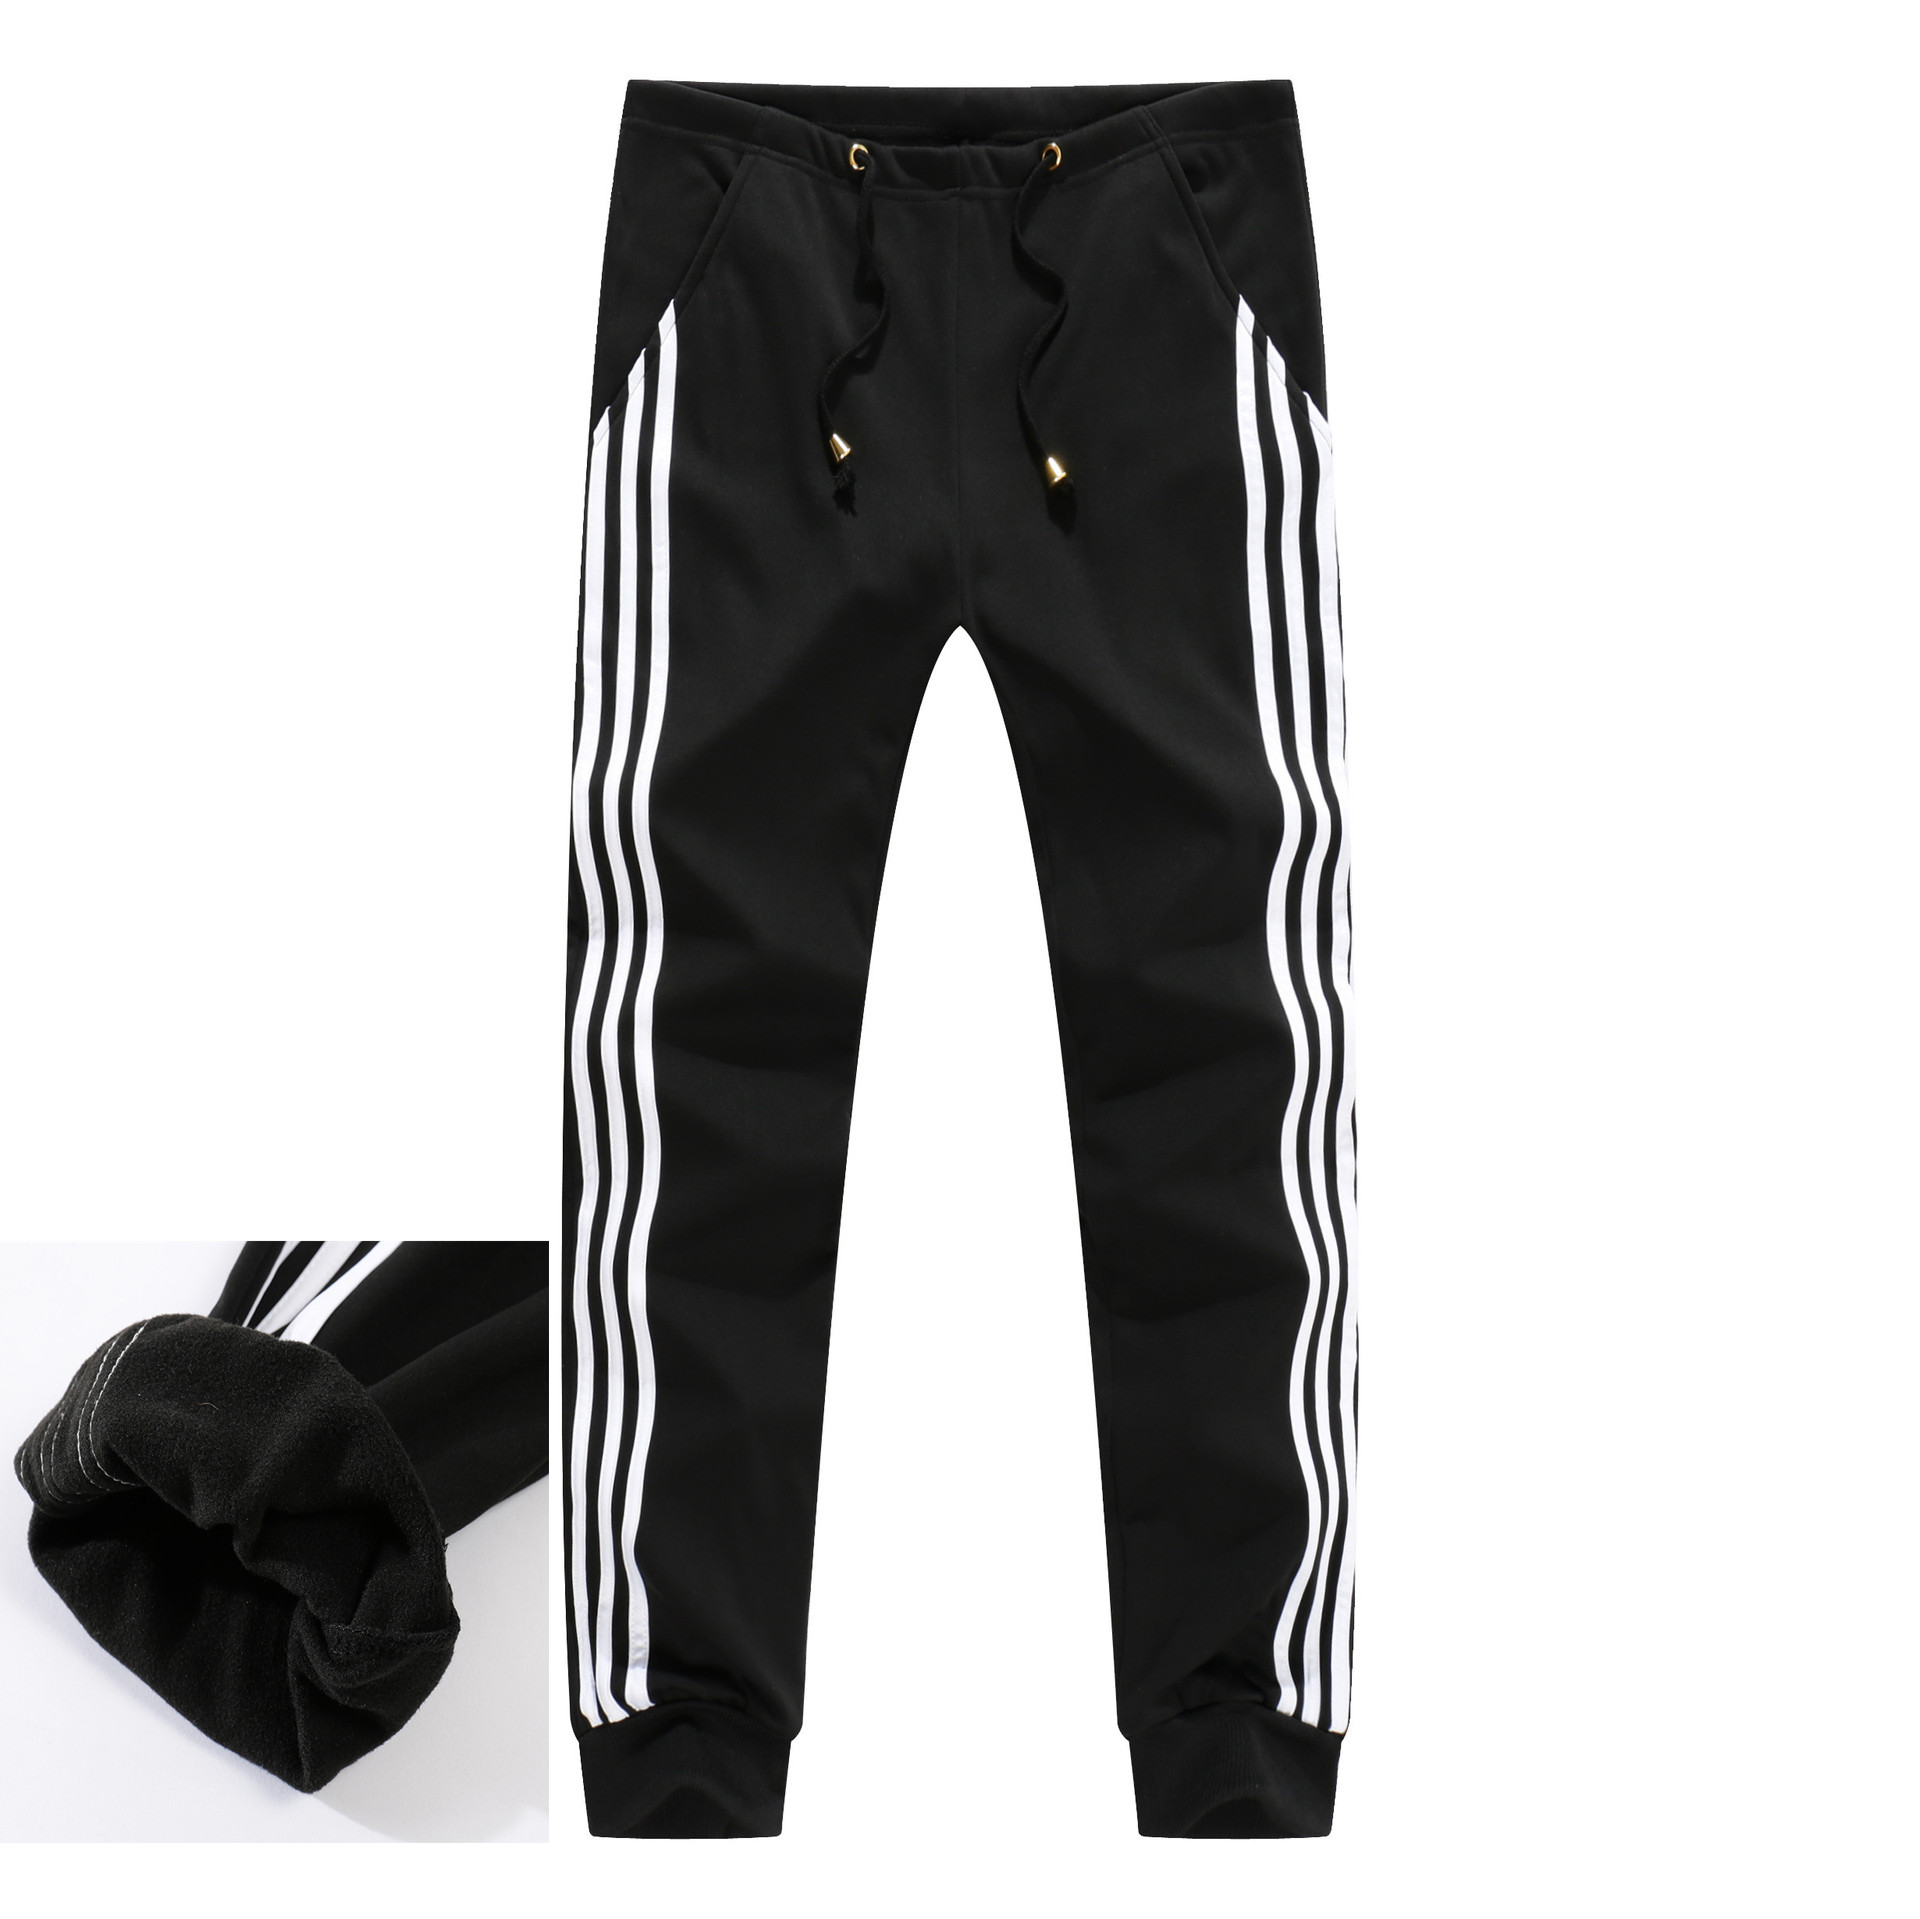 Men's Fleece Lining Sweatpants Men Winter Warm Joggers Track Pants Male Bodybuilding Fitness Thick Casual Trousers